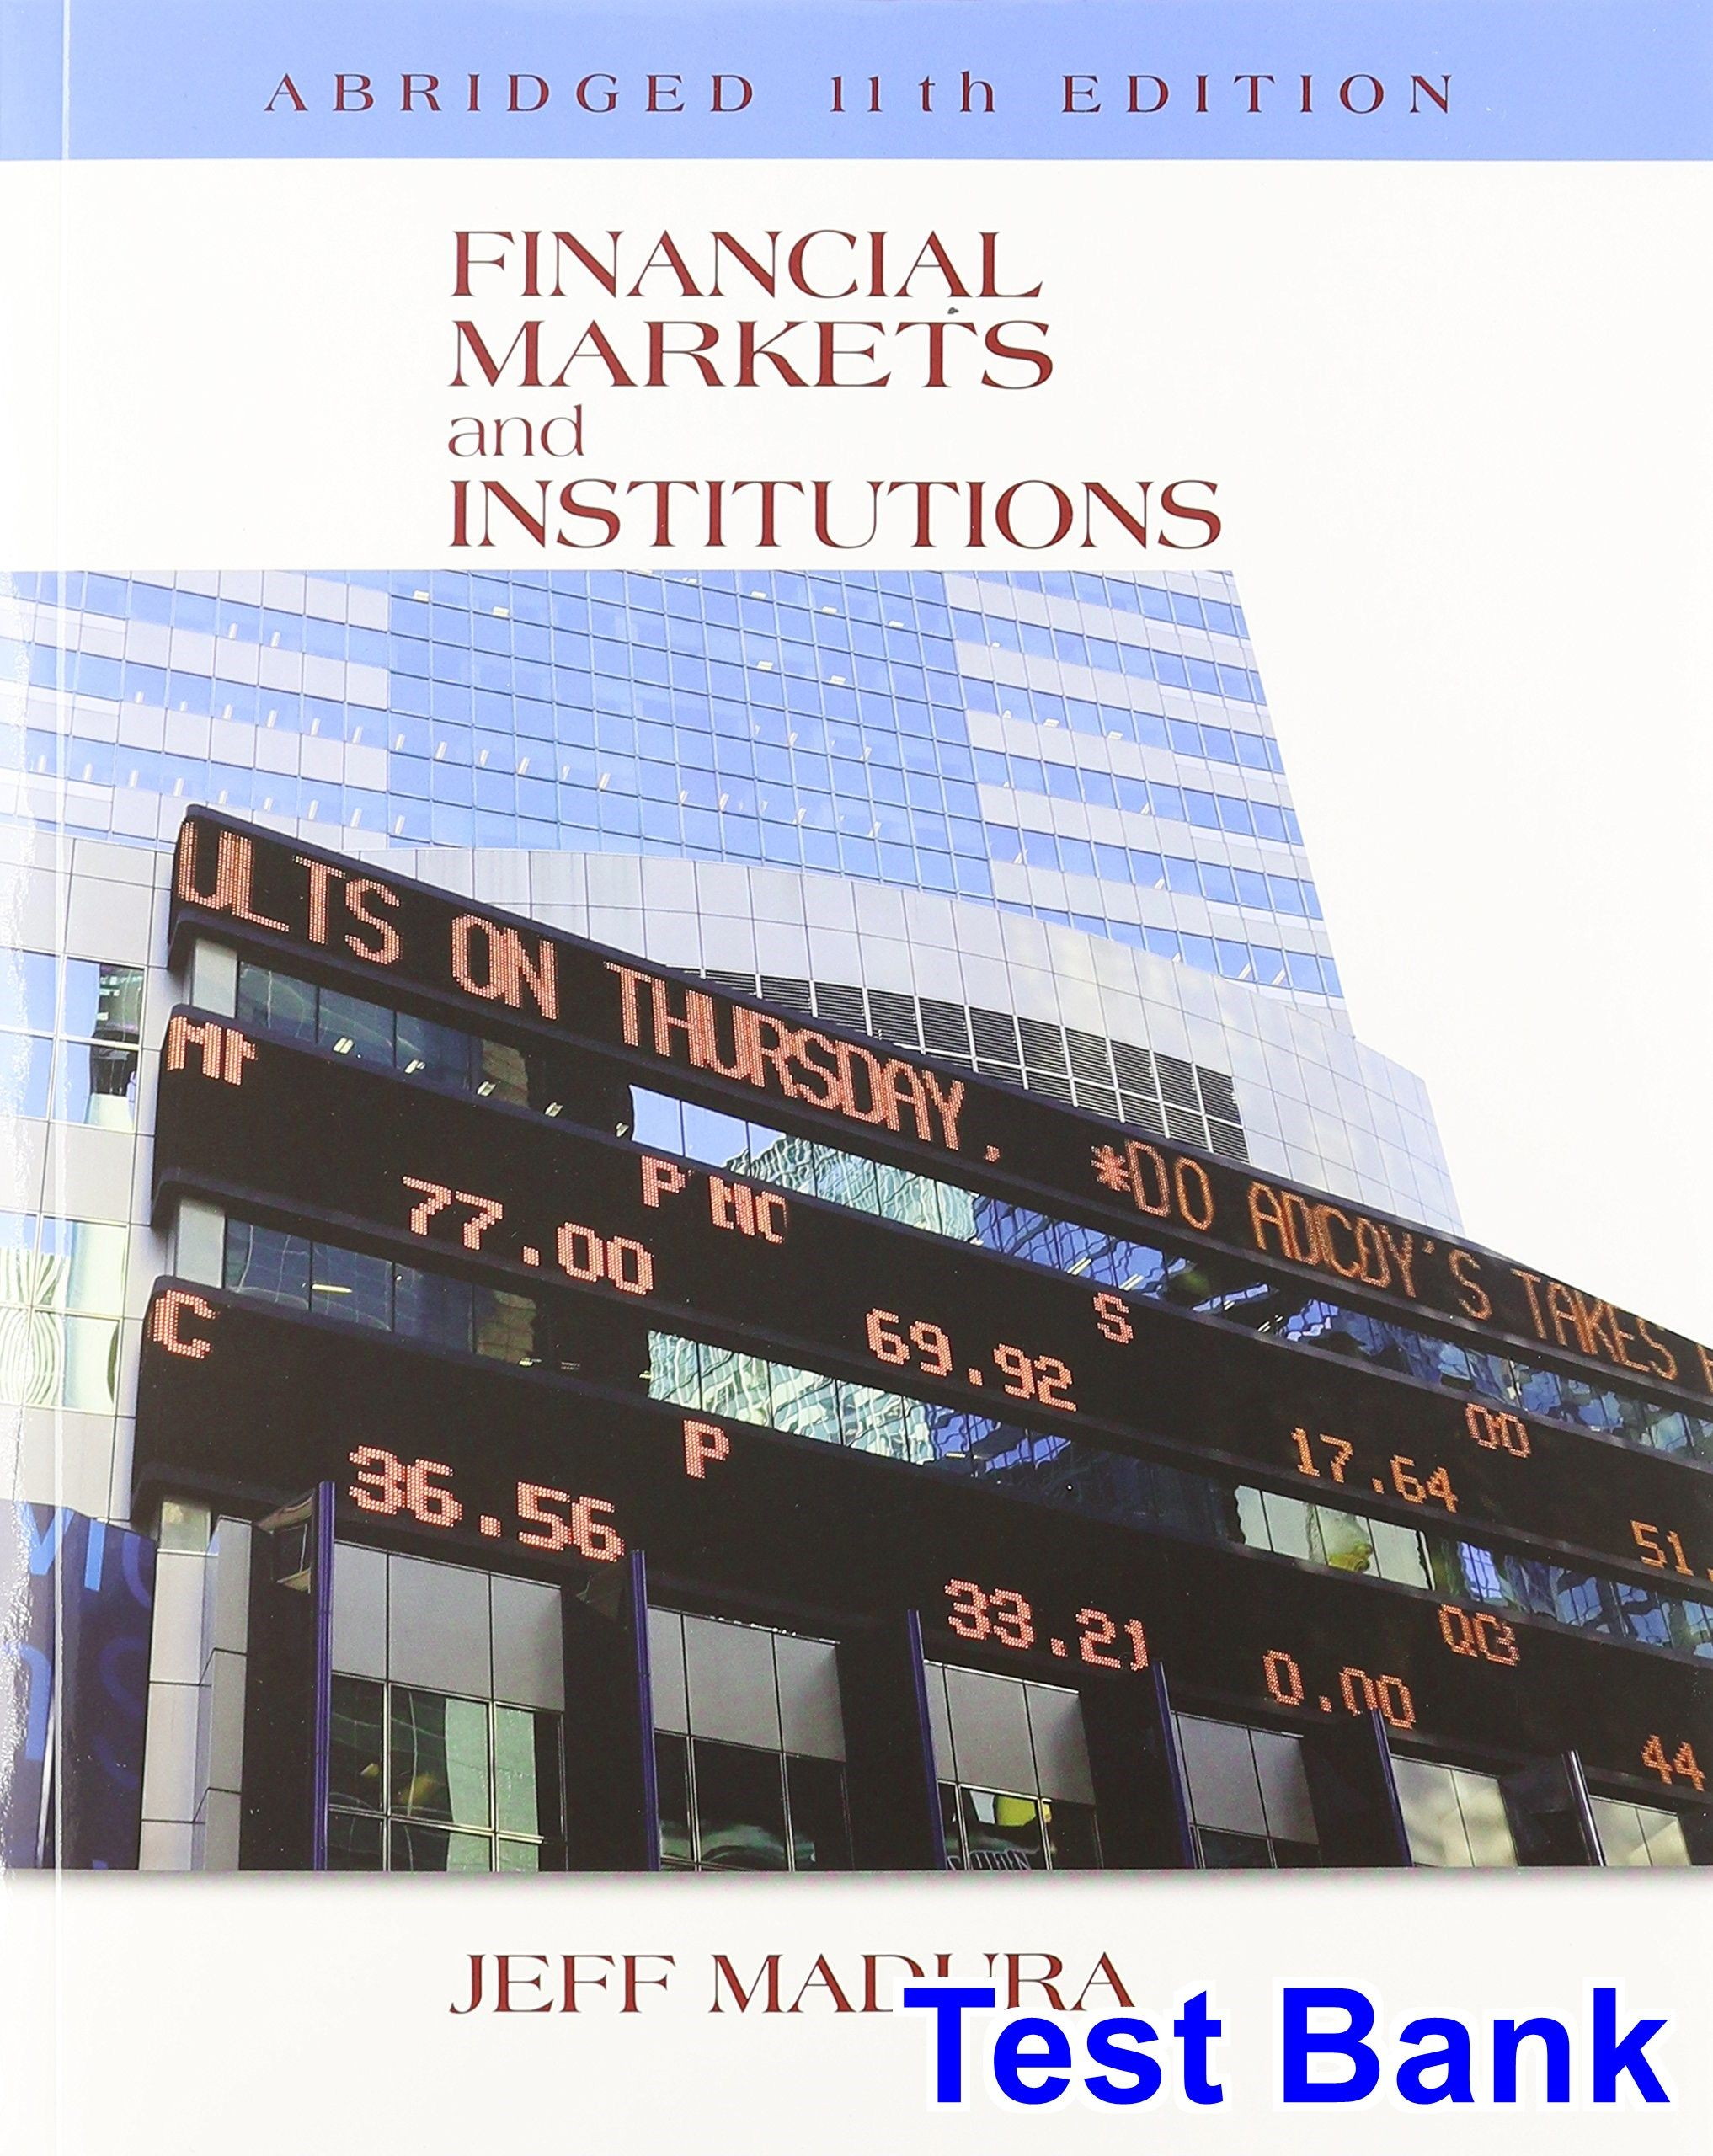 Financial Markets and Institutions Abridged Edition 11th Edition Jeff  Madura Test Bank - Test bank, Solutions manual, exam bank, quiz bank,  answer key for ...